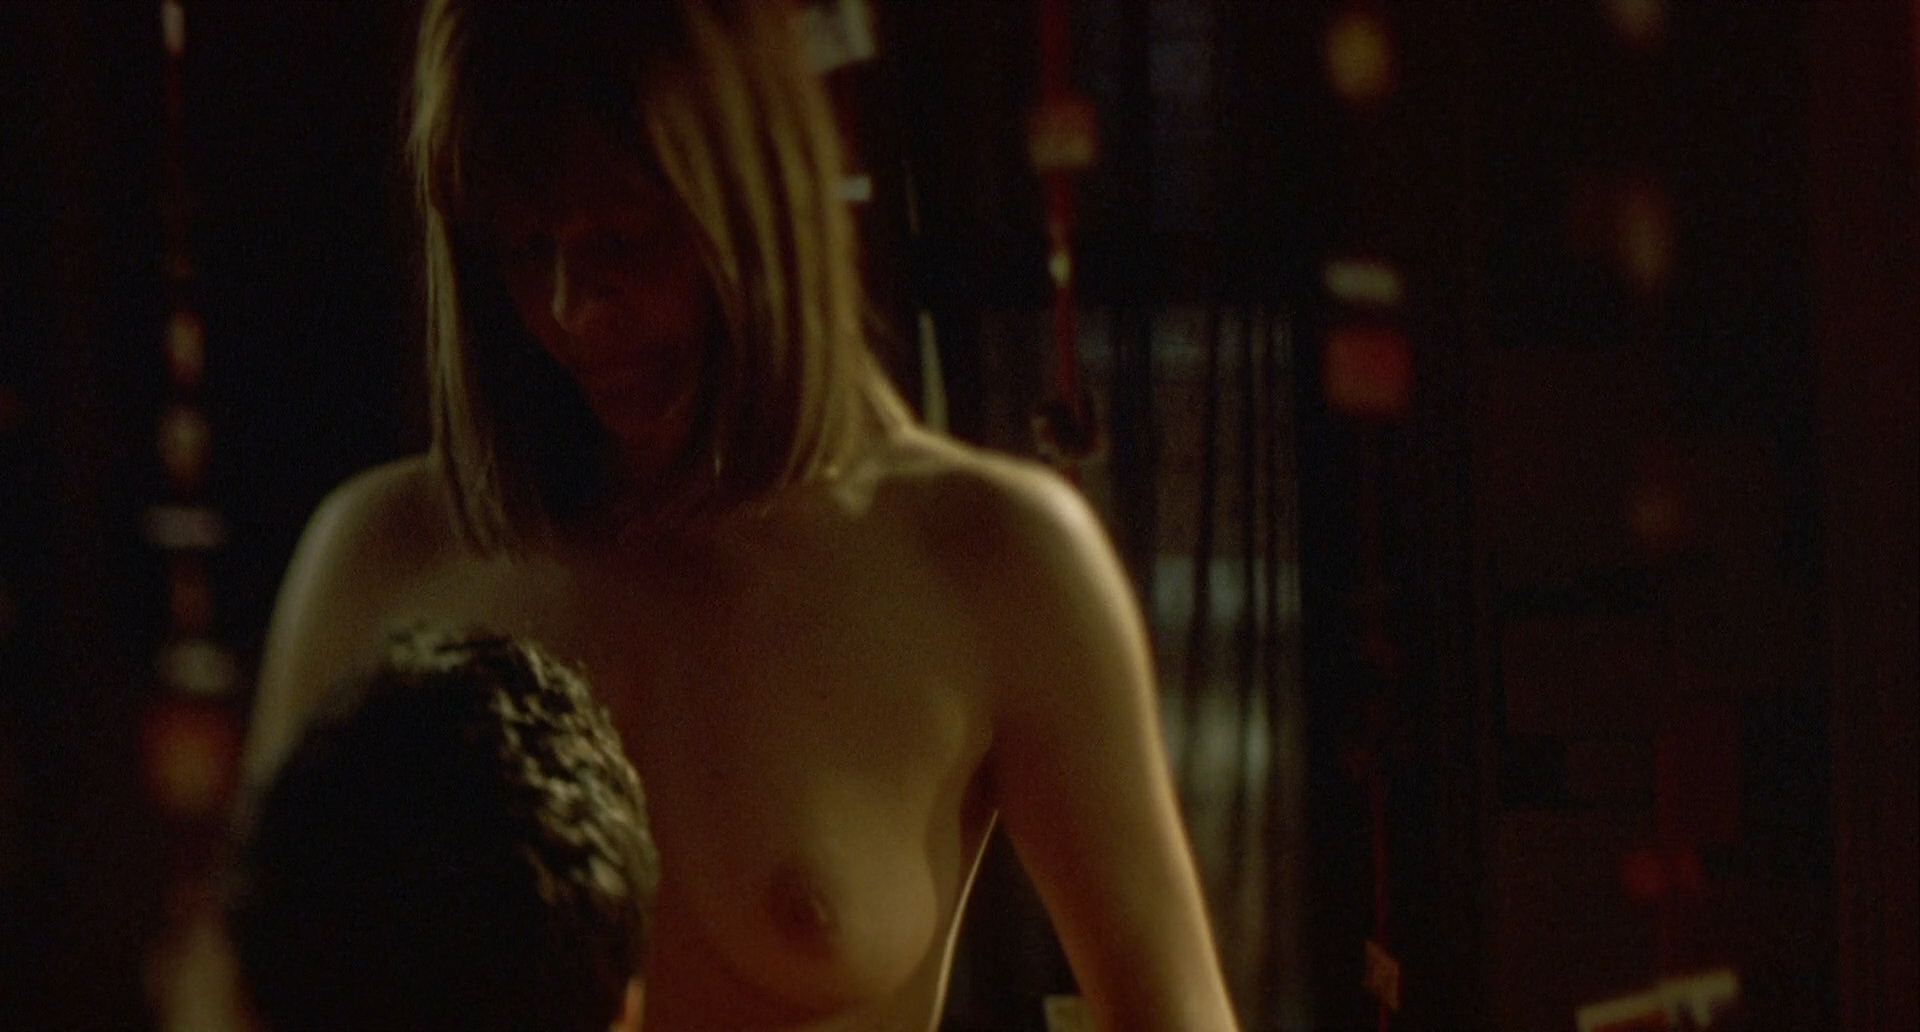 Sexiest topless nude meg ryan, naked beach picture